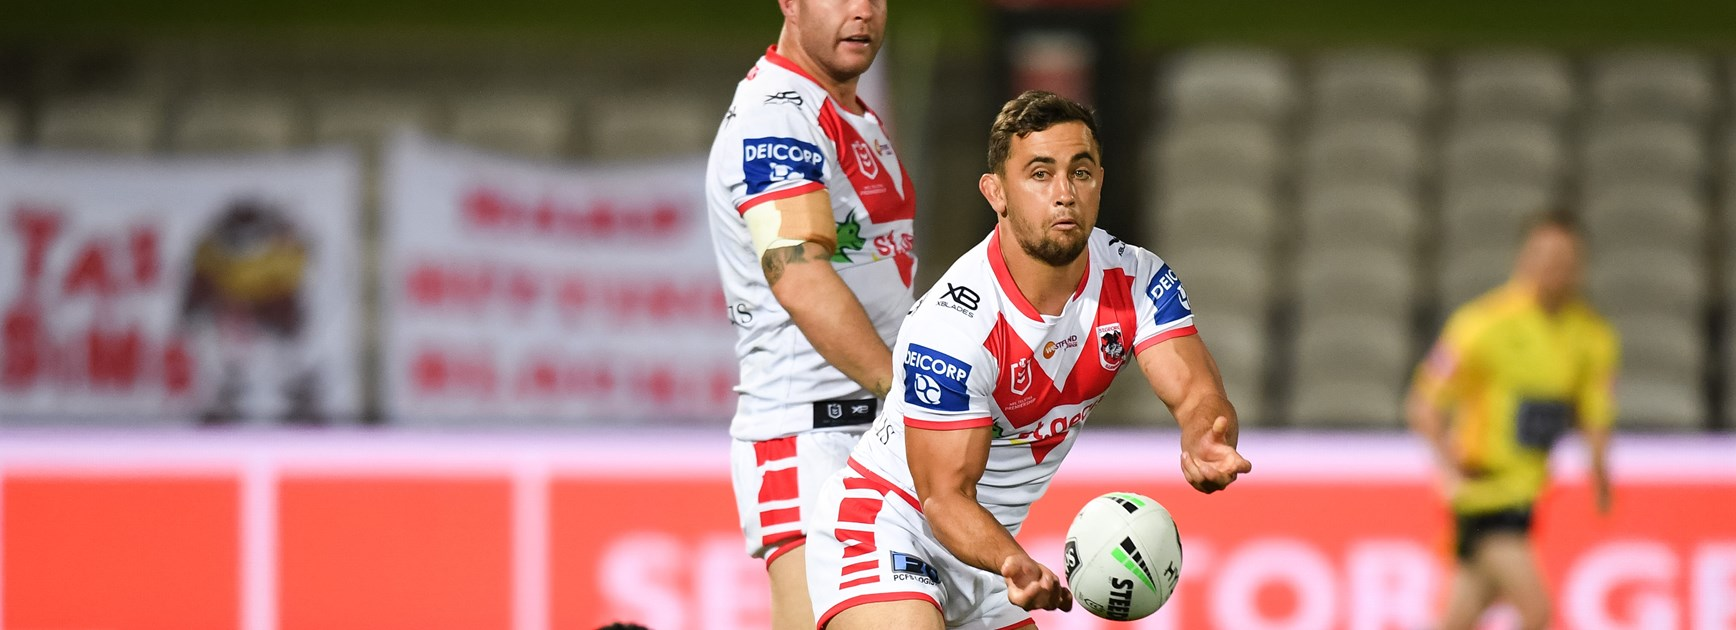 Nrl 2020 St George Illawarra Dragons